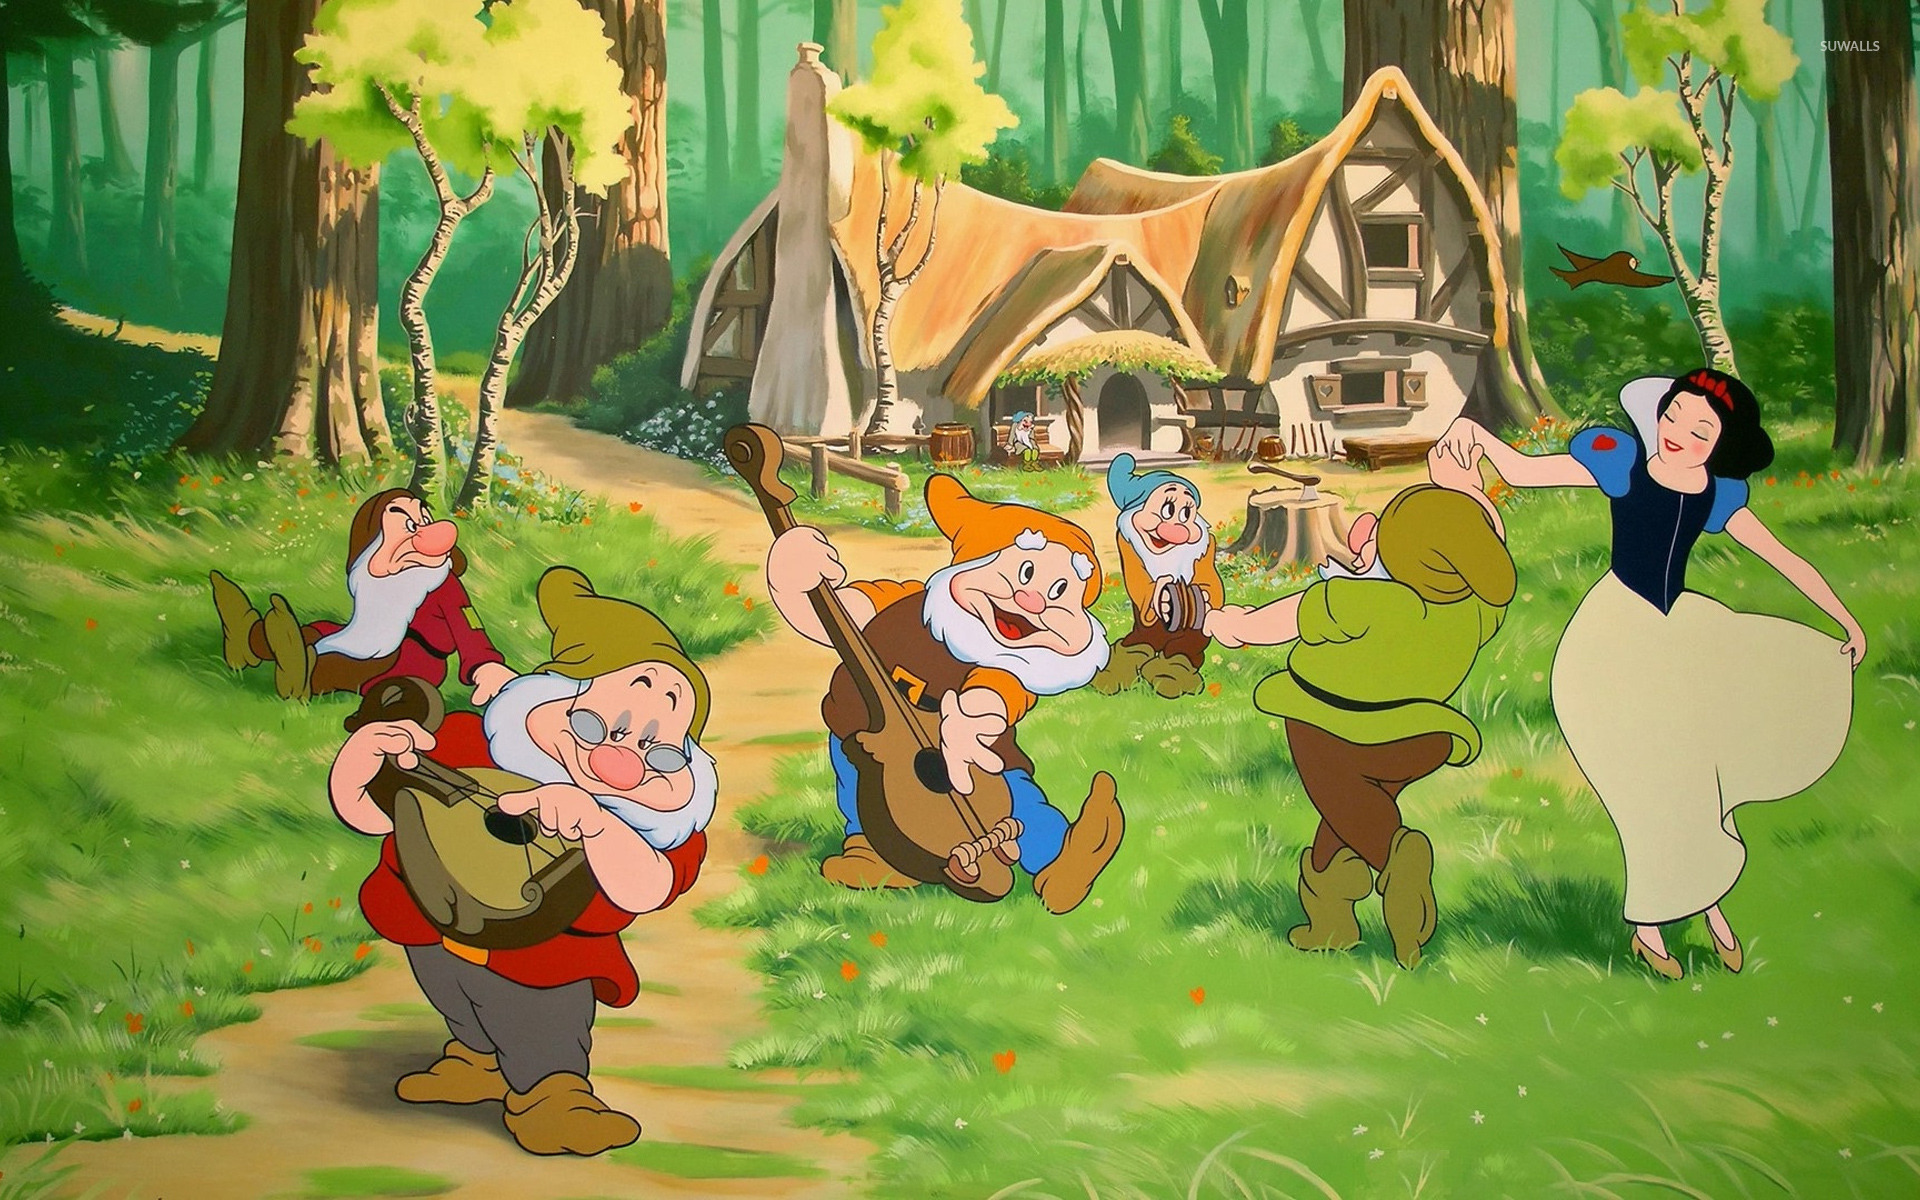 snow white and the seven dwarfs wallpaper - cartoon wallpapers - #12155